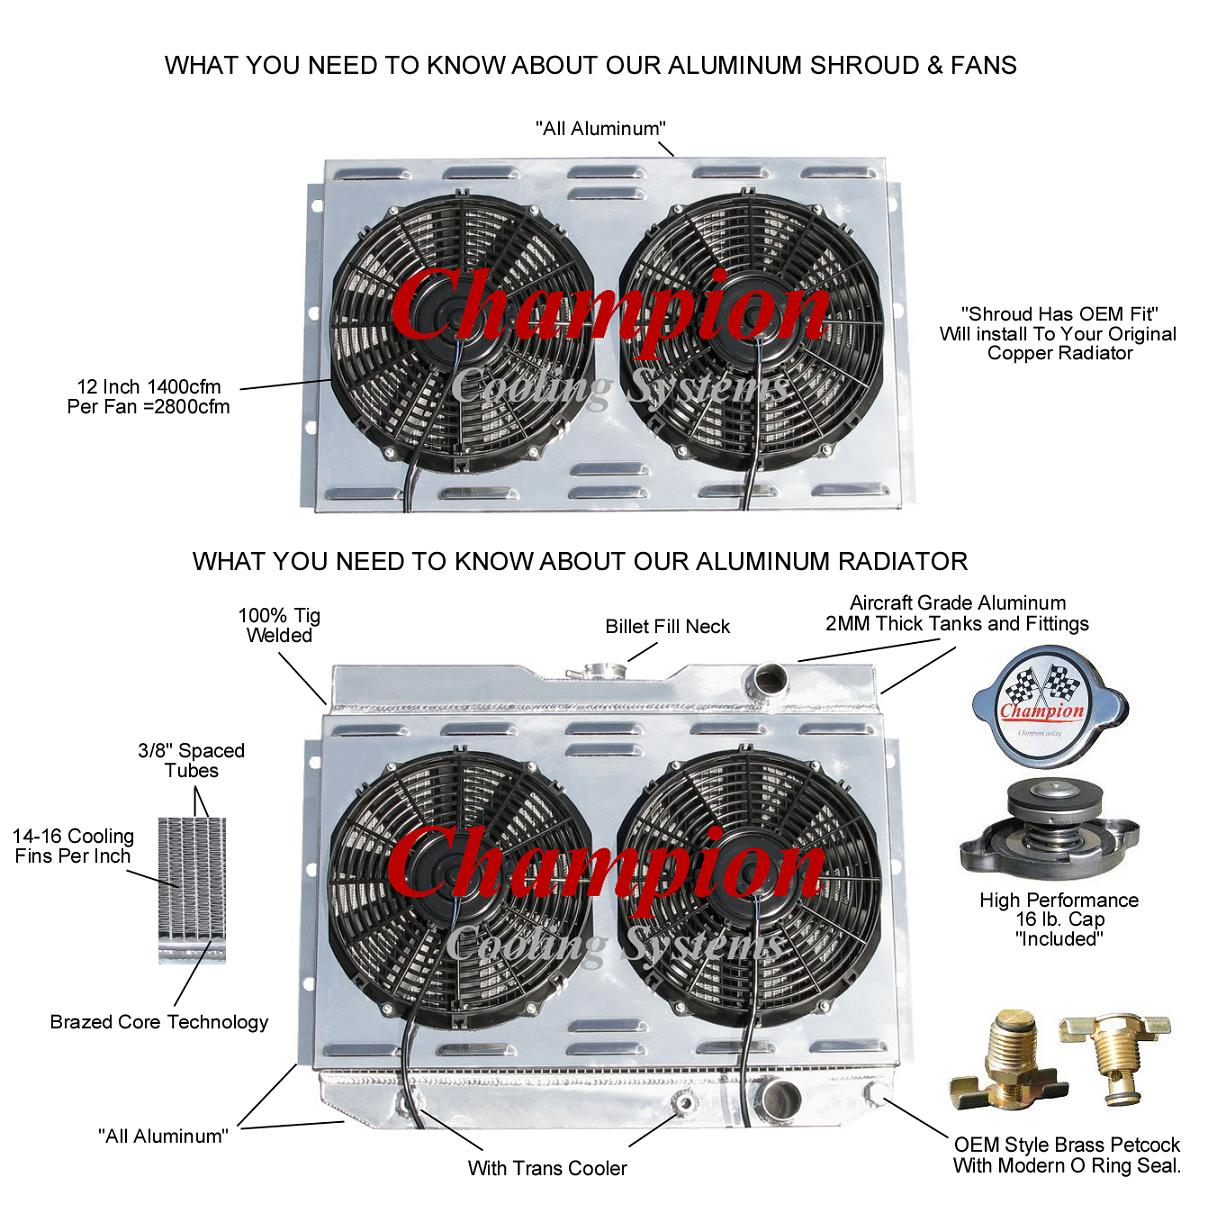 hight resolution of champion radiators fan wiring diagram wiring library rh 21 skriptoase de 1950 studebaker champion wiring diagrams haynes ld 4100r dumpmaster wiring diagram